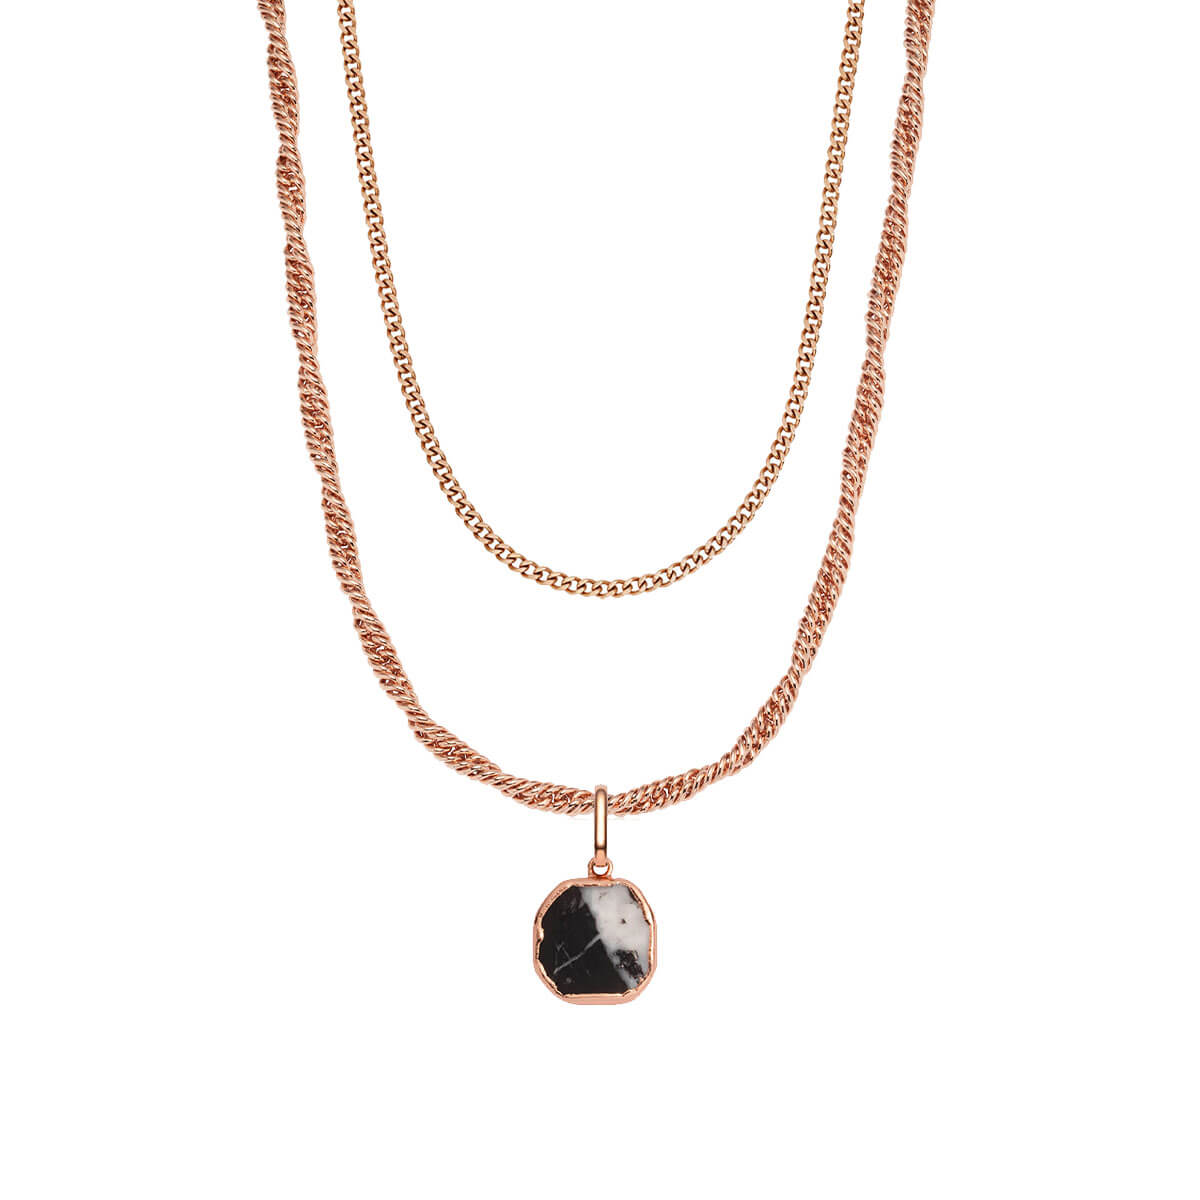 Rope Chain & Marble Pendant Layered Set (Rose Gold)